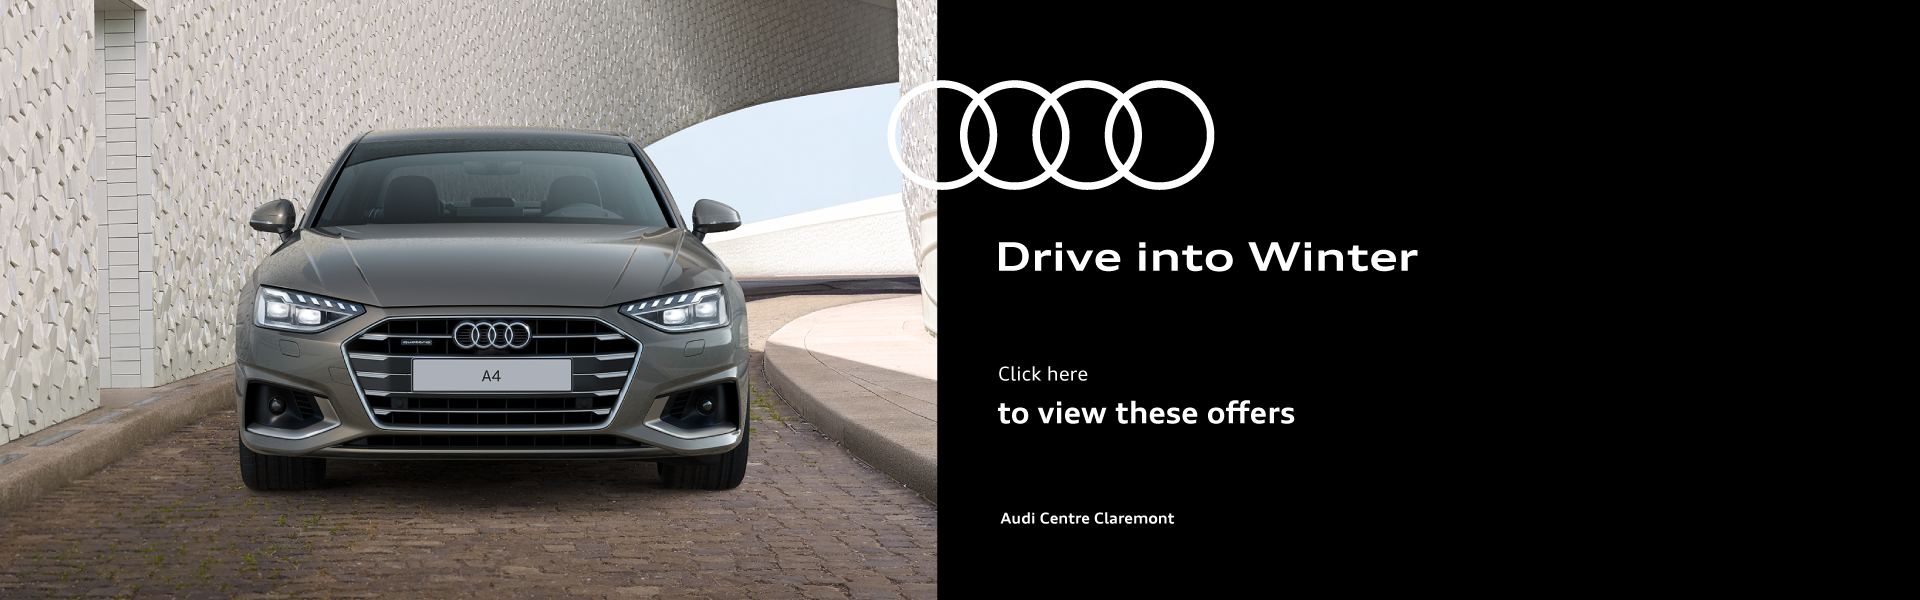 Audi Hello December Offers